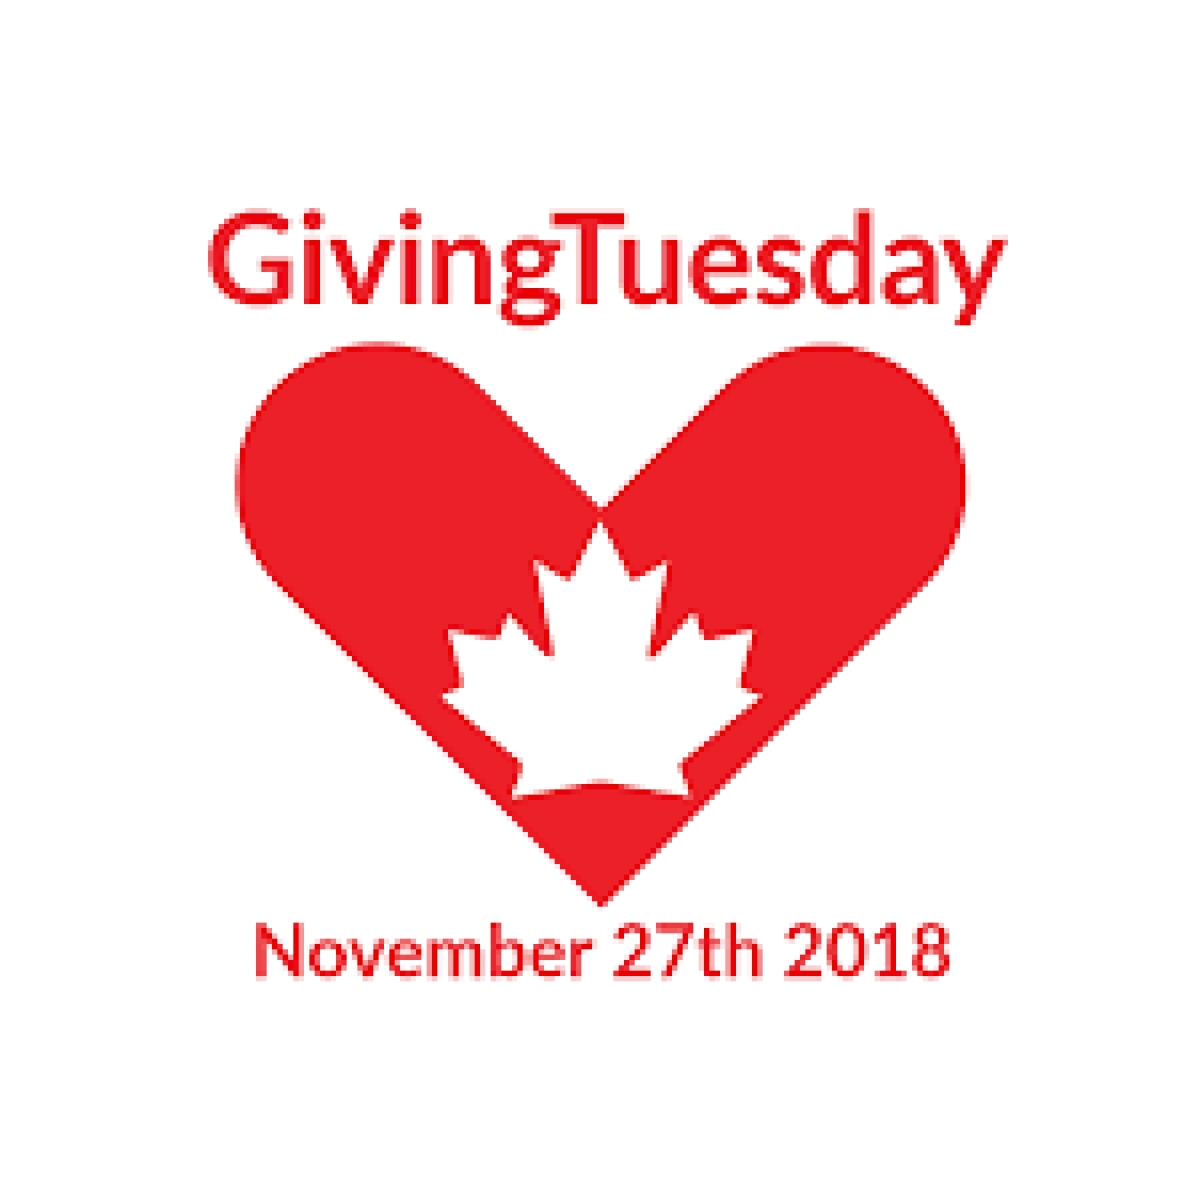 Giving Tuesday: November 27, 2018